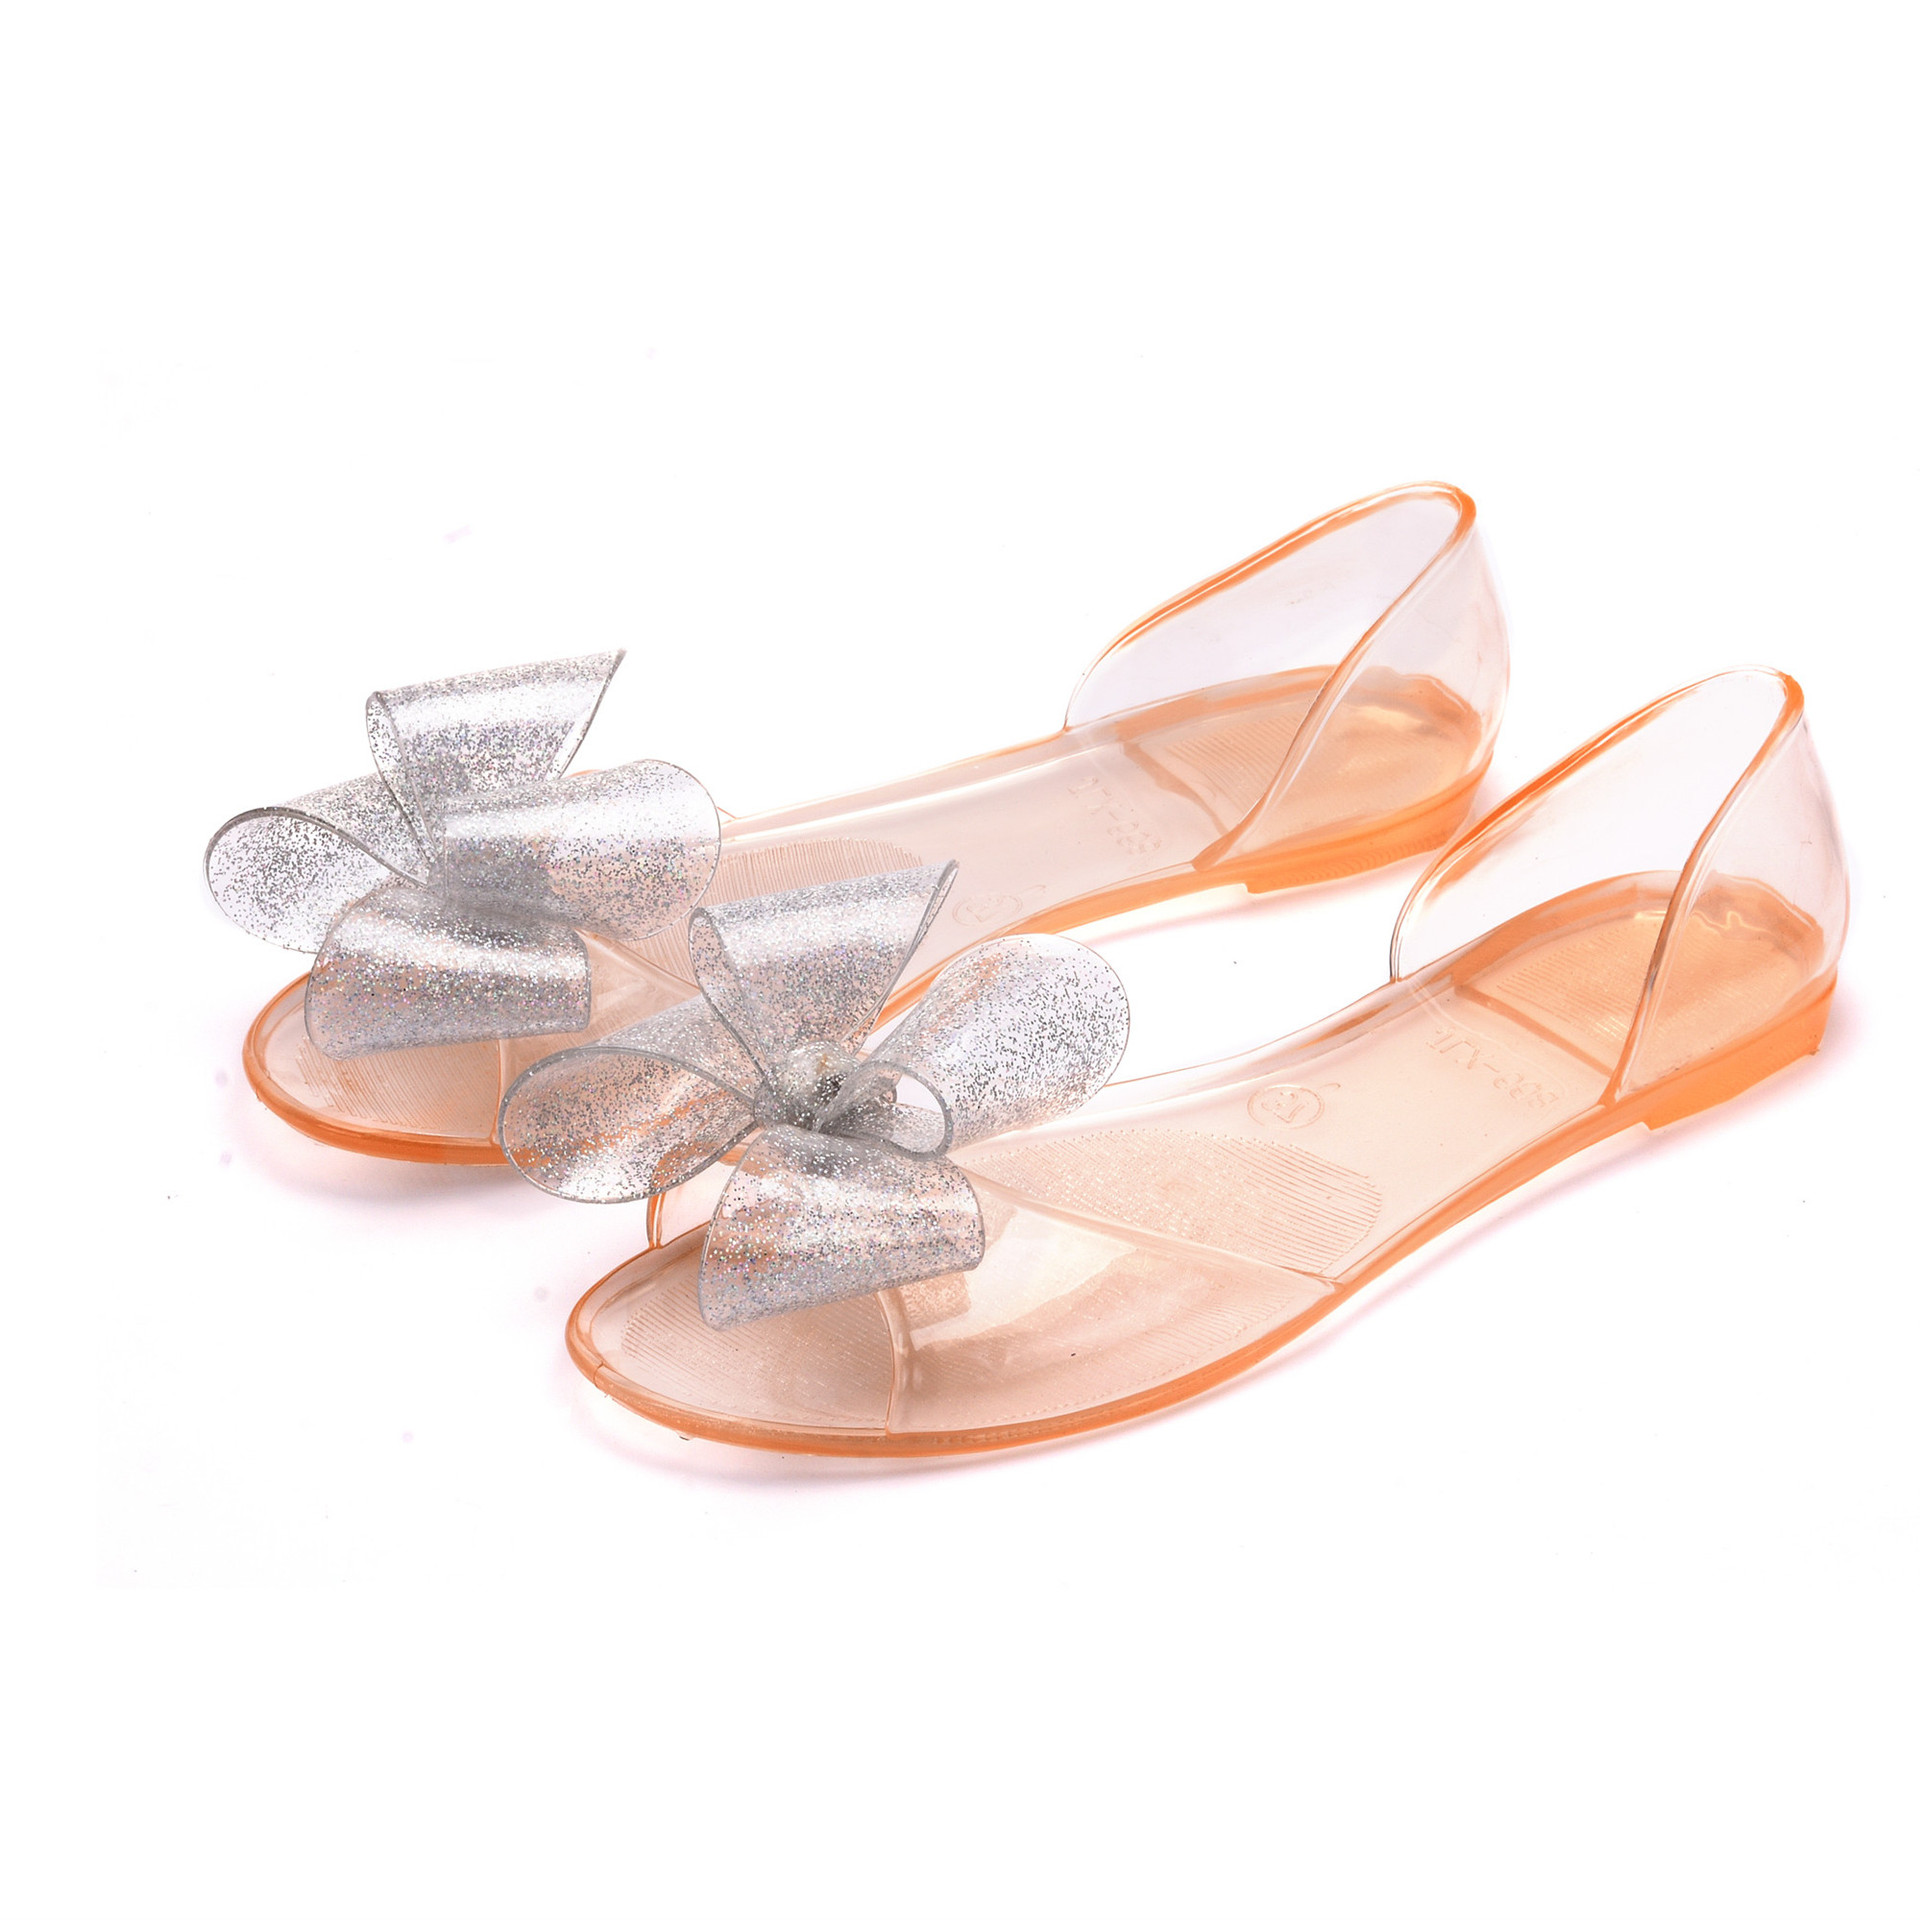 top brand women casual sandals big bowtie plastic sandal shoes adulto flats transparent jelly shoes female summer shoes XK021303<br><br>Aliexpress